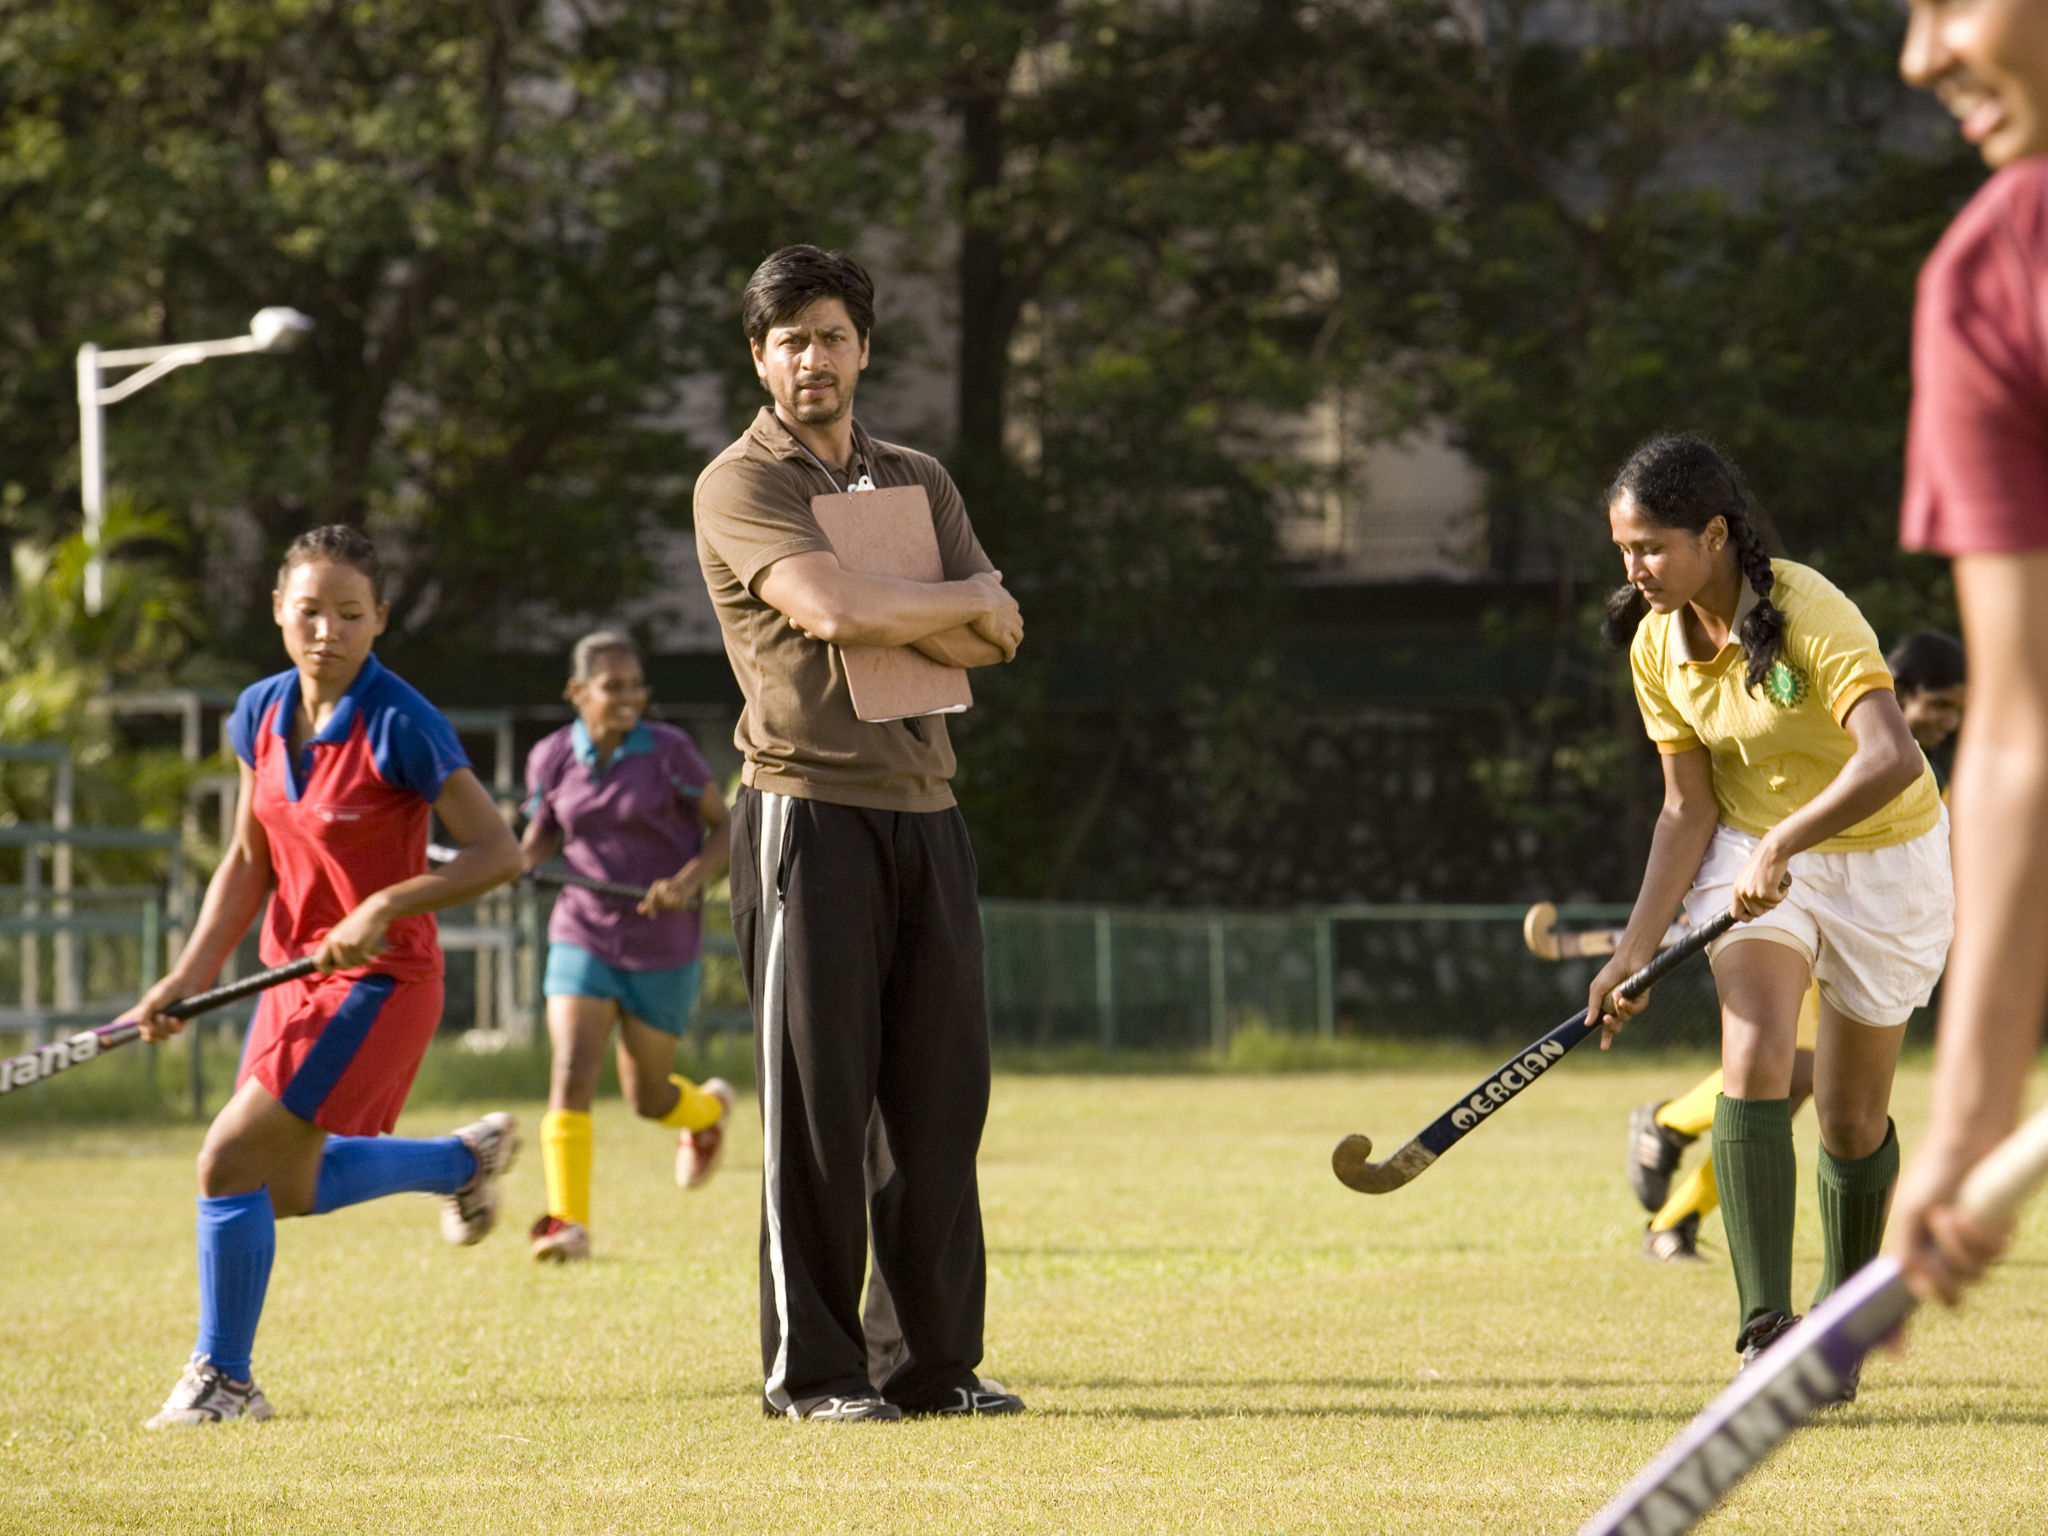 Bollywood movie: Chak De! India